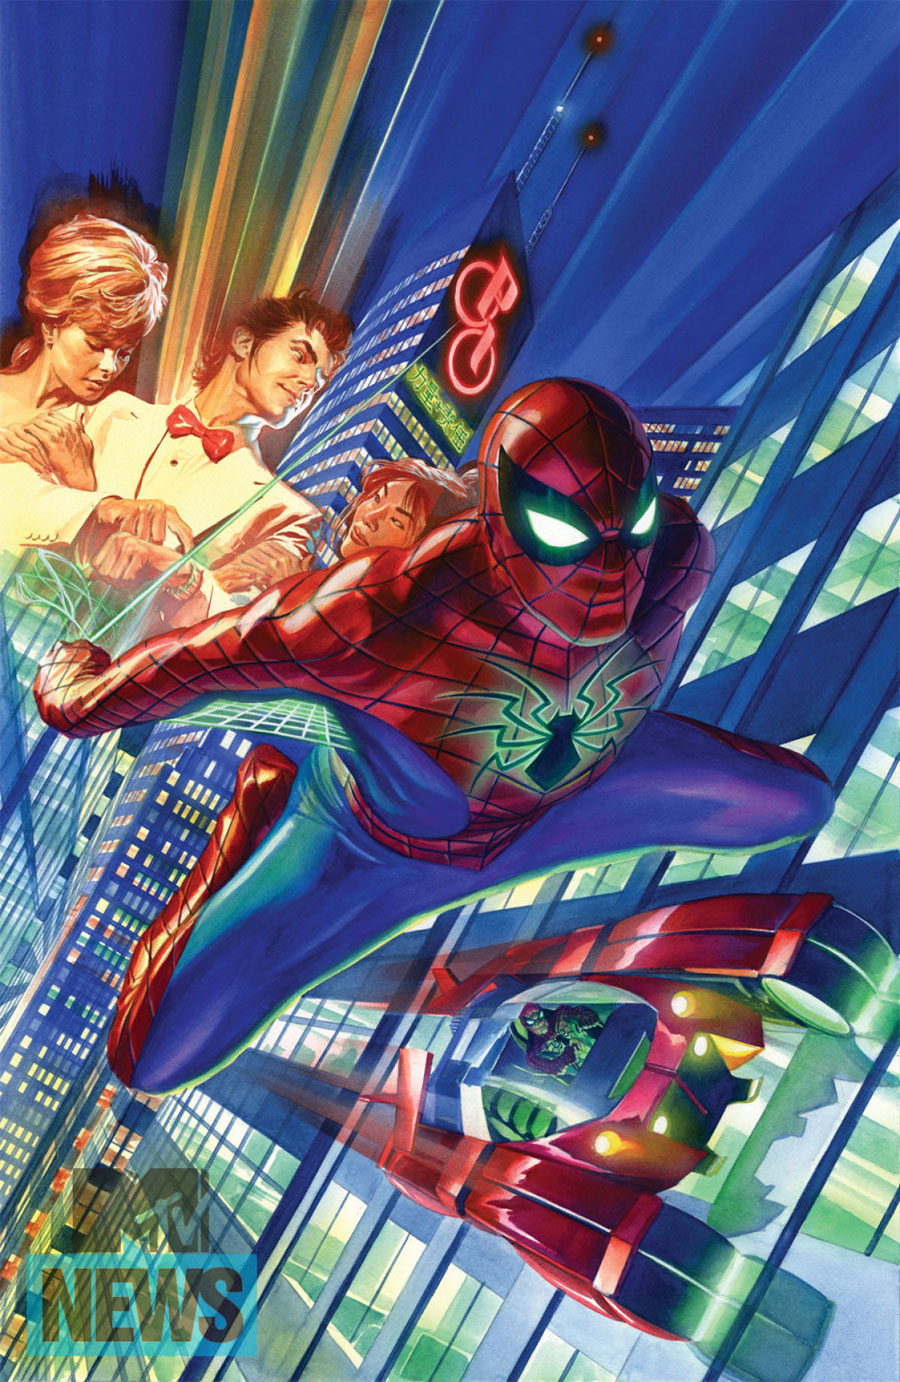 The Amazing Spider-Man by Slott & Camuncoli